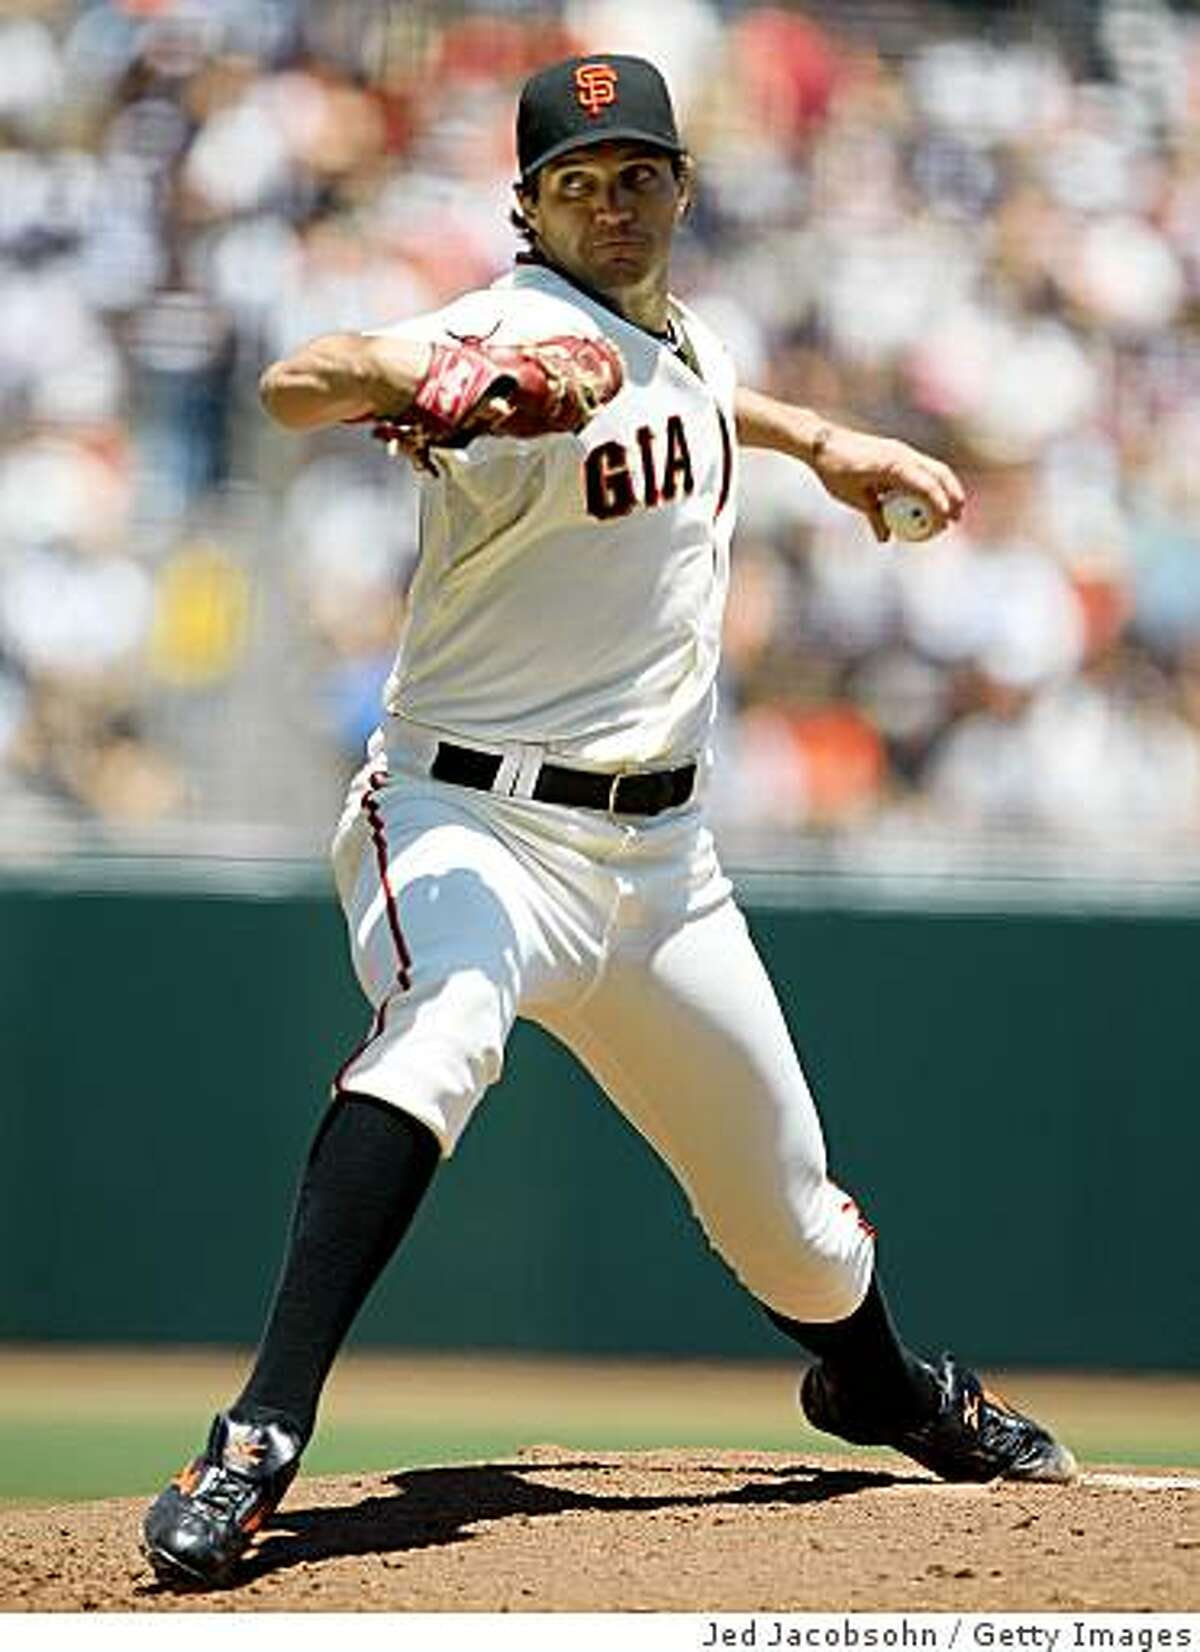 SAN FRANCISCO - JUNE 21: Barry Zito #75 of the San Francisco Giants pitches against the Texas Rangers during a Major League Baseball game on June 21, 2009 at AT&T Park in San Francisco, California. (Photo by Jed Jacobsohn/Getty Images)